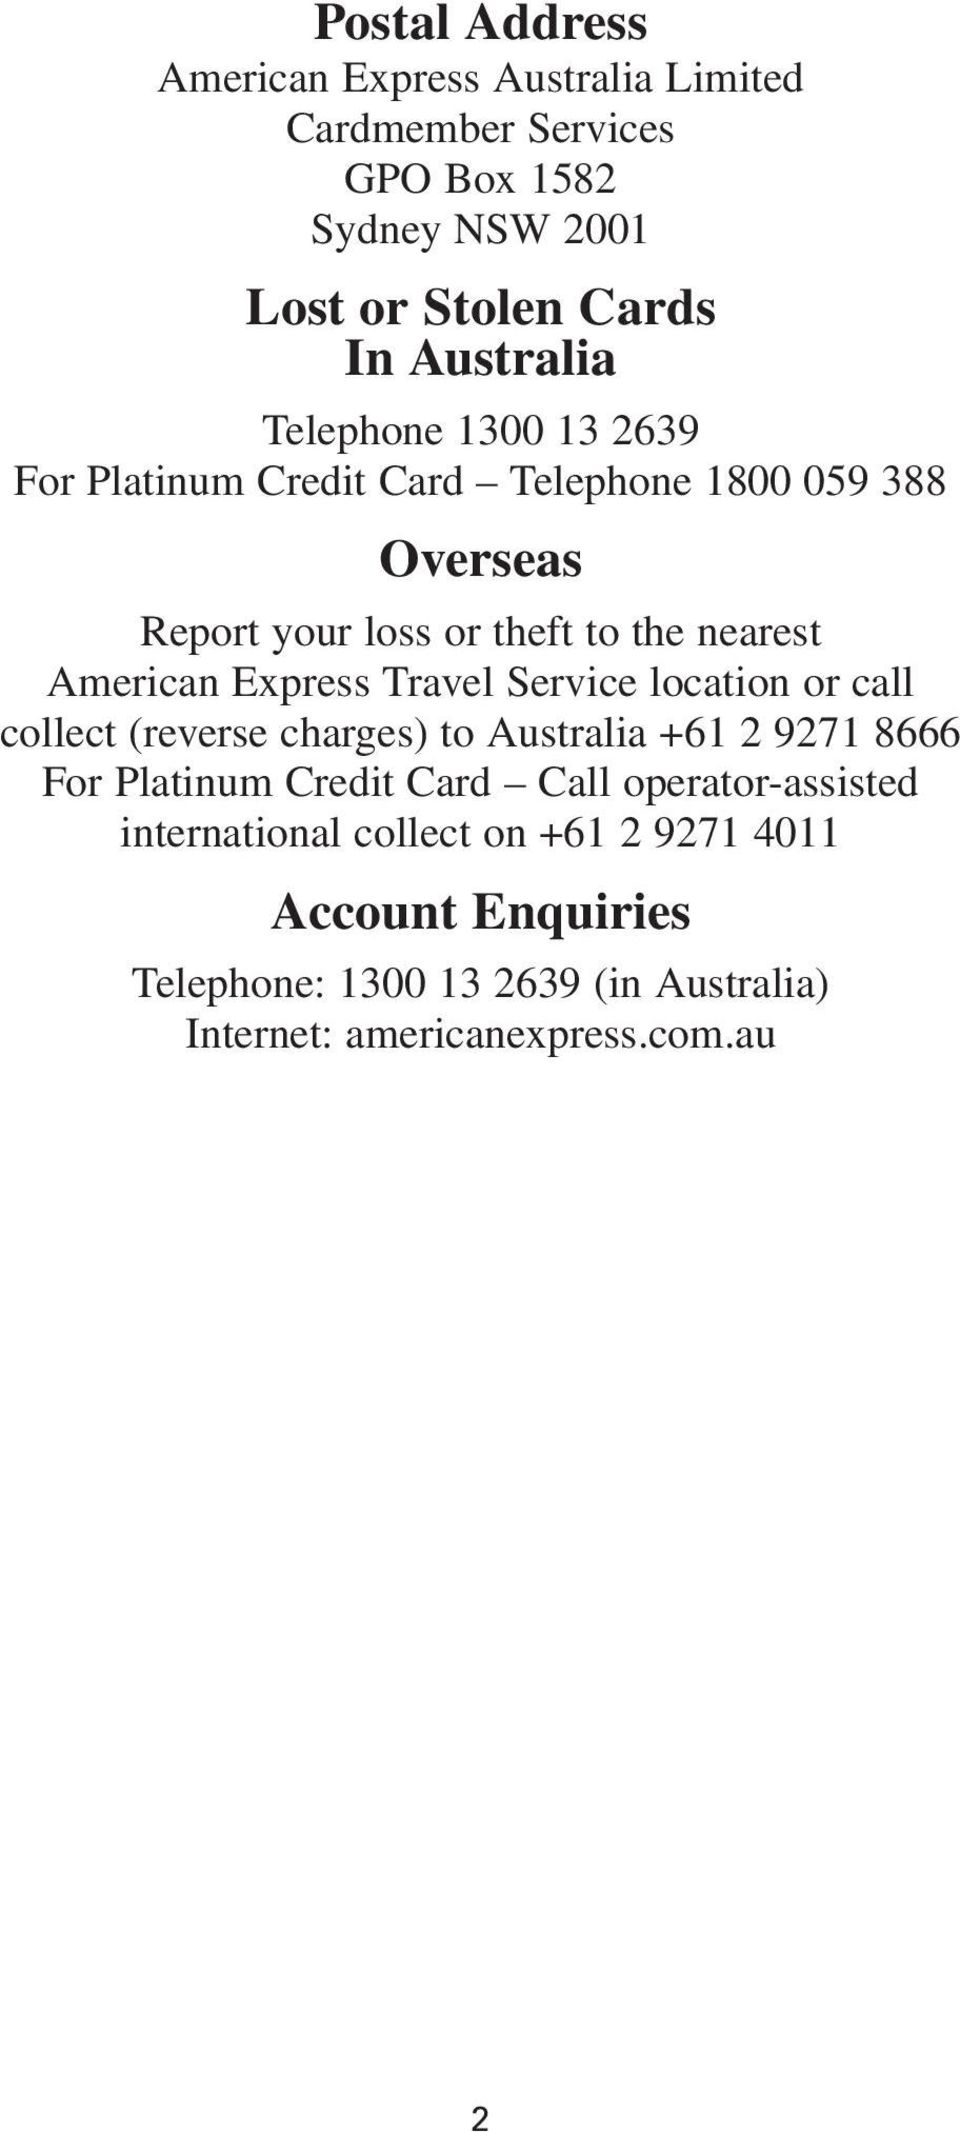 Express Travel Service location or call collect (reverse charges) to Australia +61 2 9271 8666 For Platinum Credit Card Call